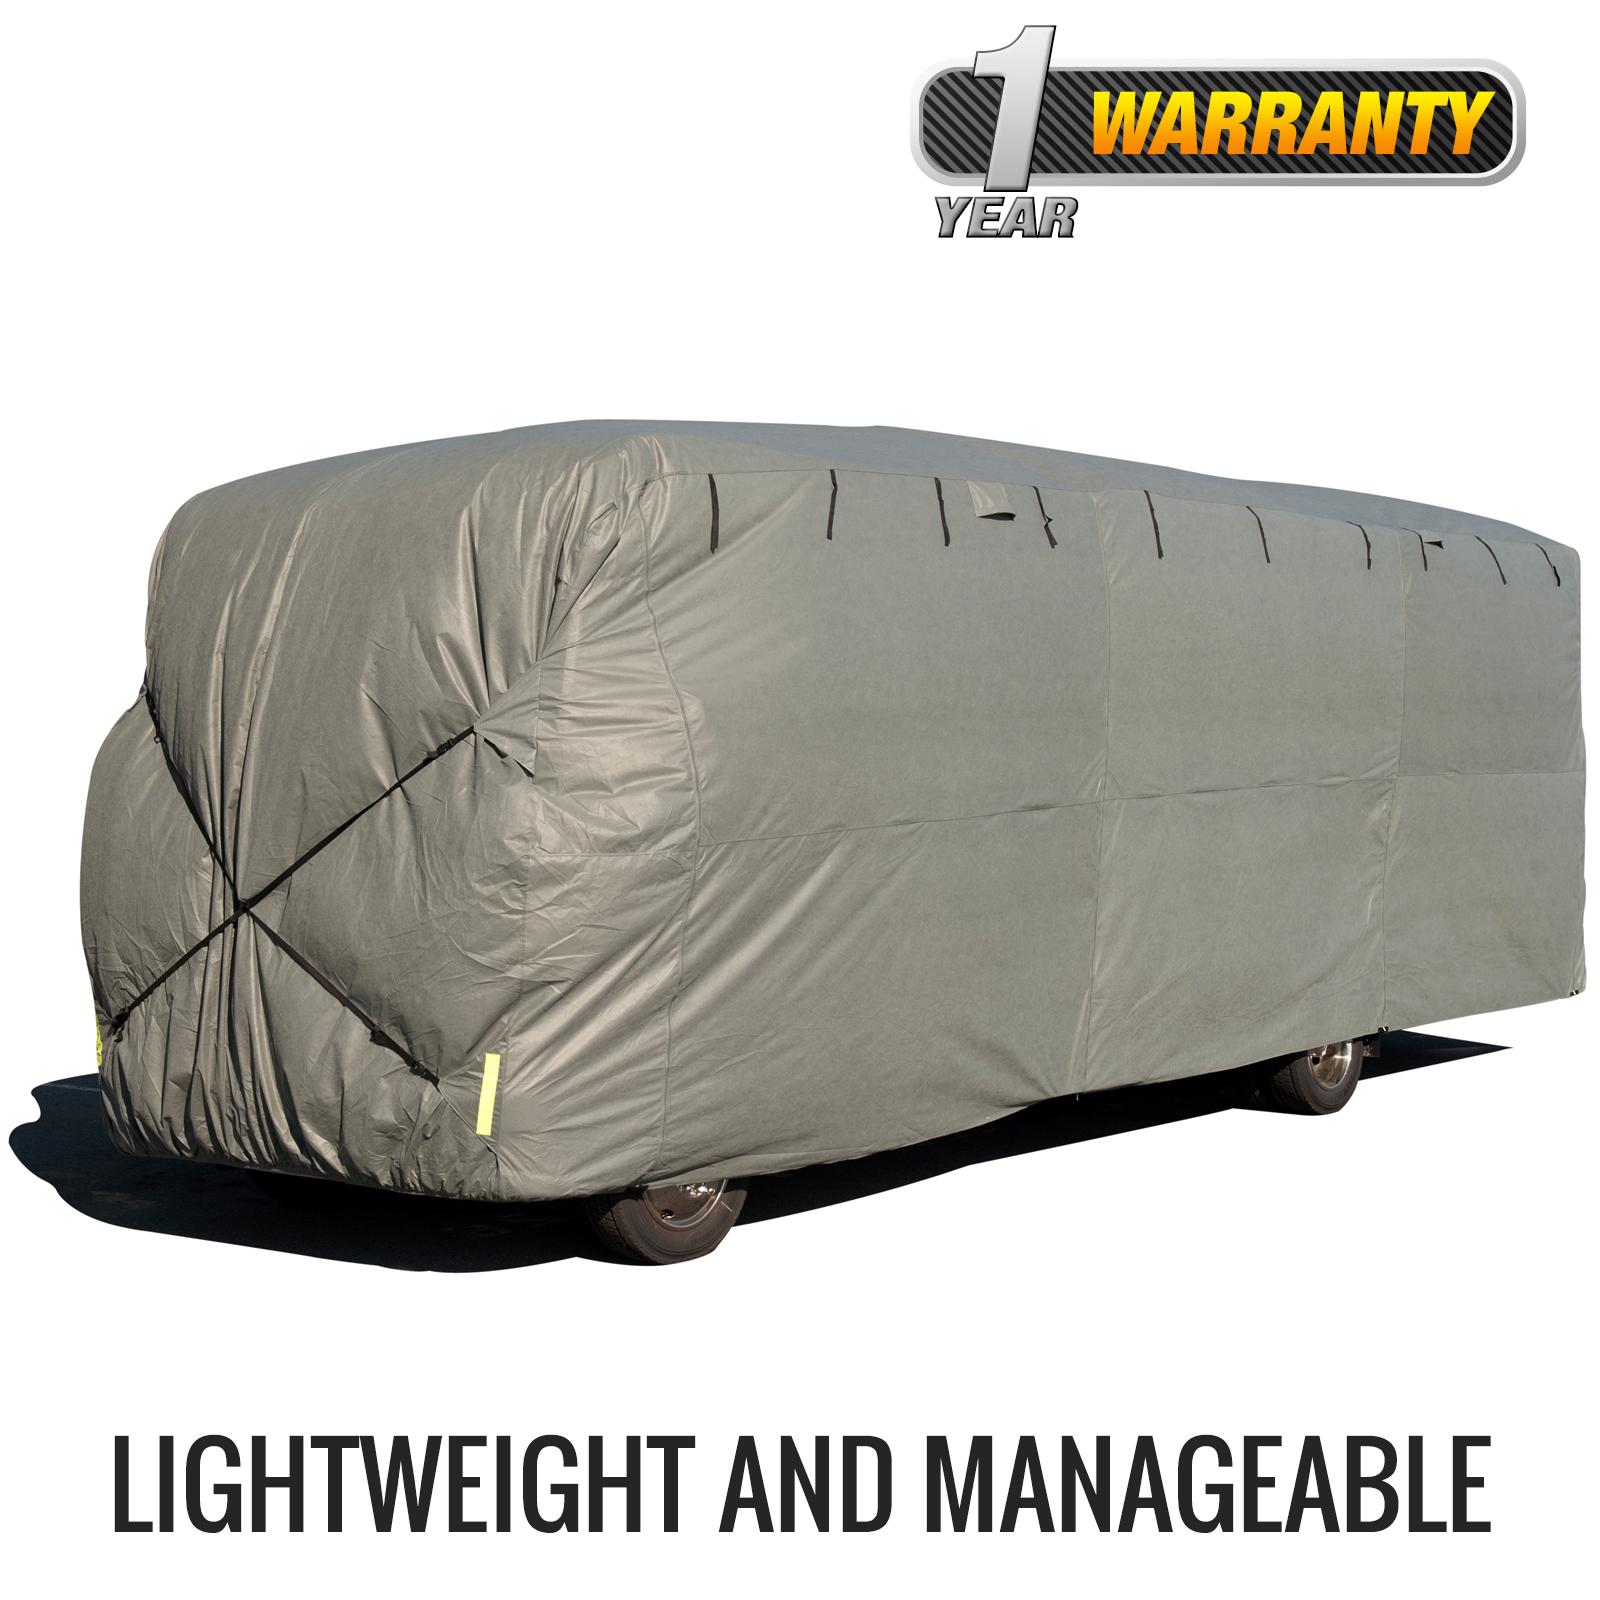 Budge Standard Class A RV Cover (Gray) Size A Up to 24' Long